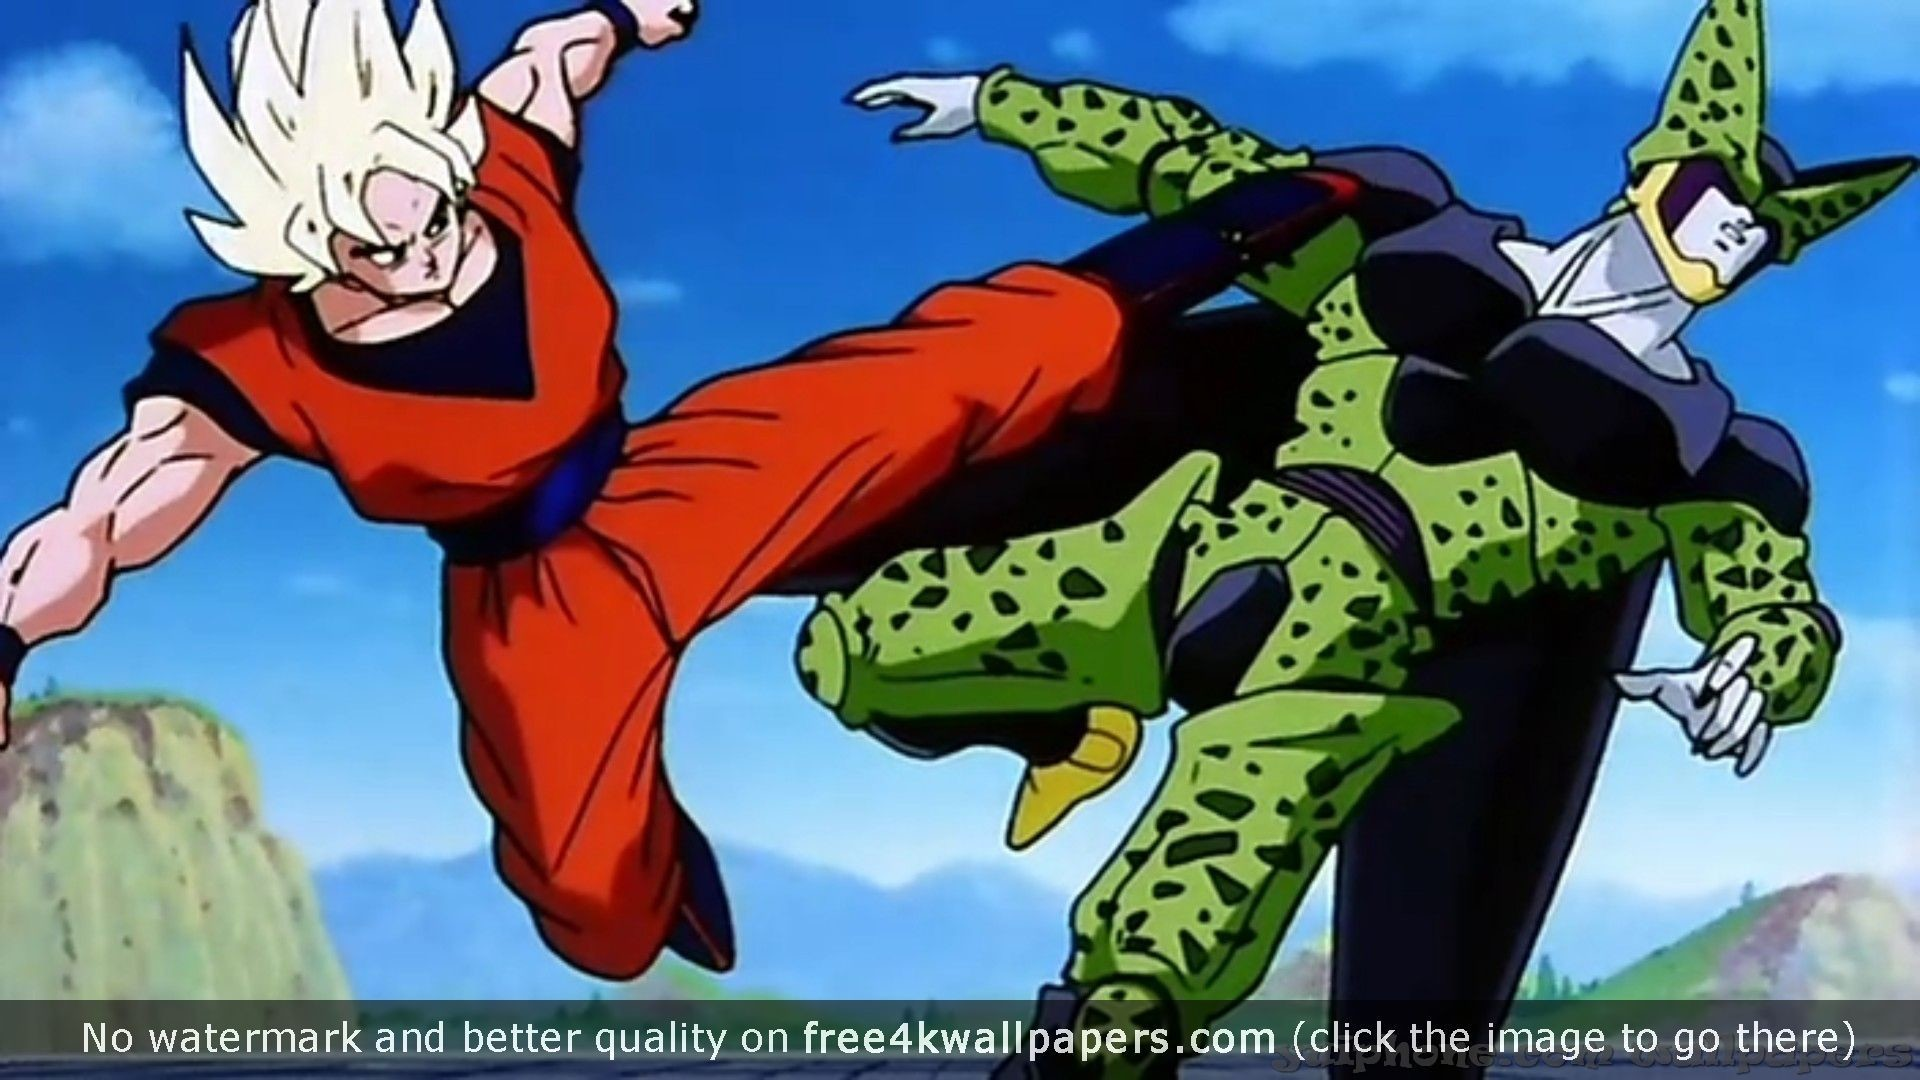 Cell Vs Goku Dragon Ball Z Backgrounds and S 4K or HD wallpaper .